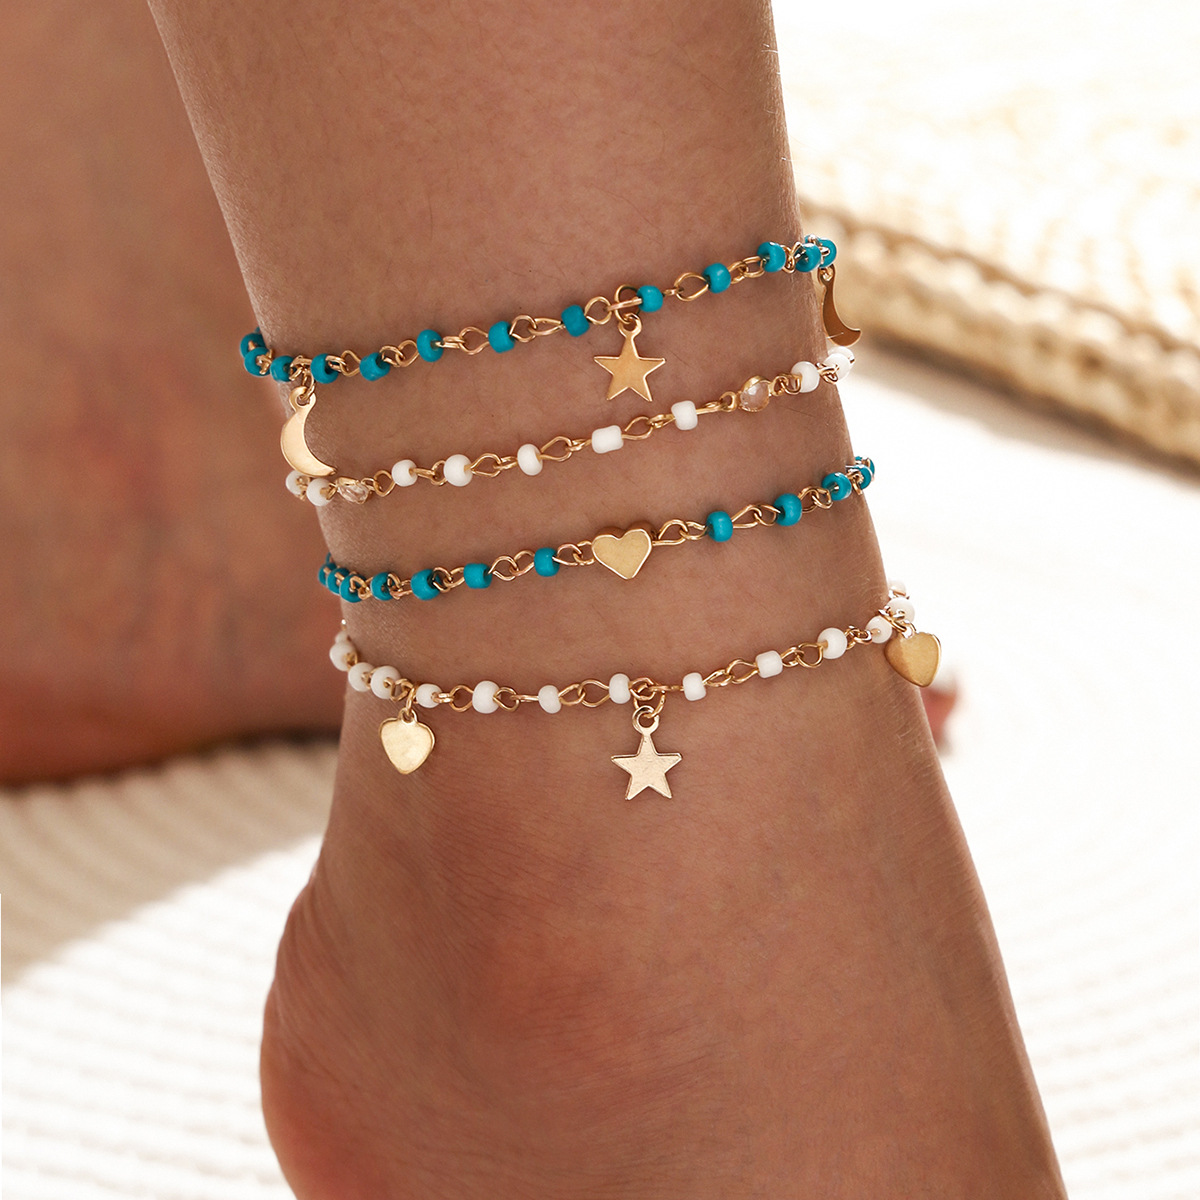 Fashion simple beaded chain fivepointed star moon love pendant tassel anklet 4piece set NHPV257754